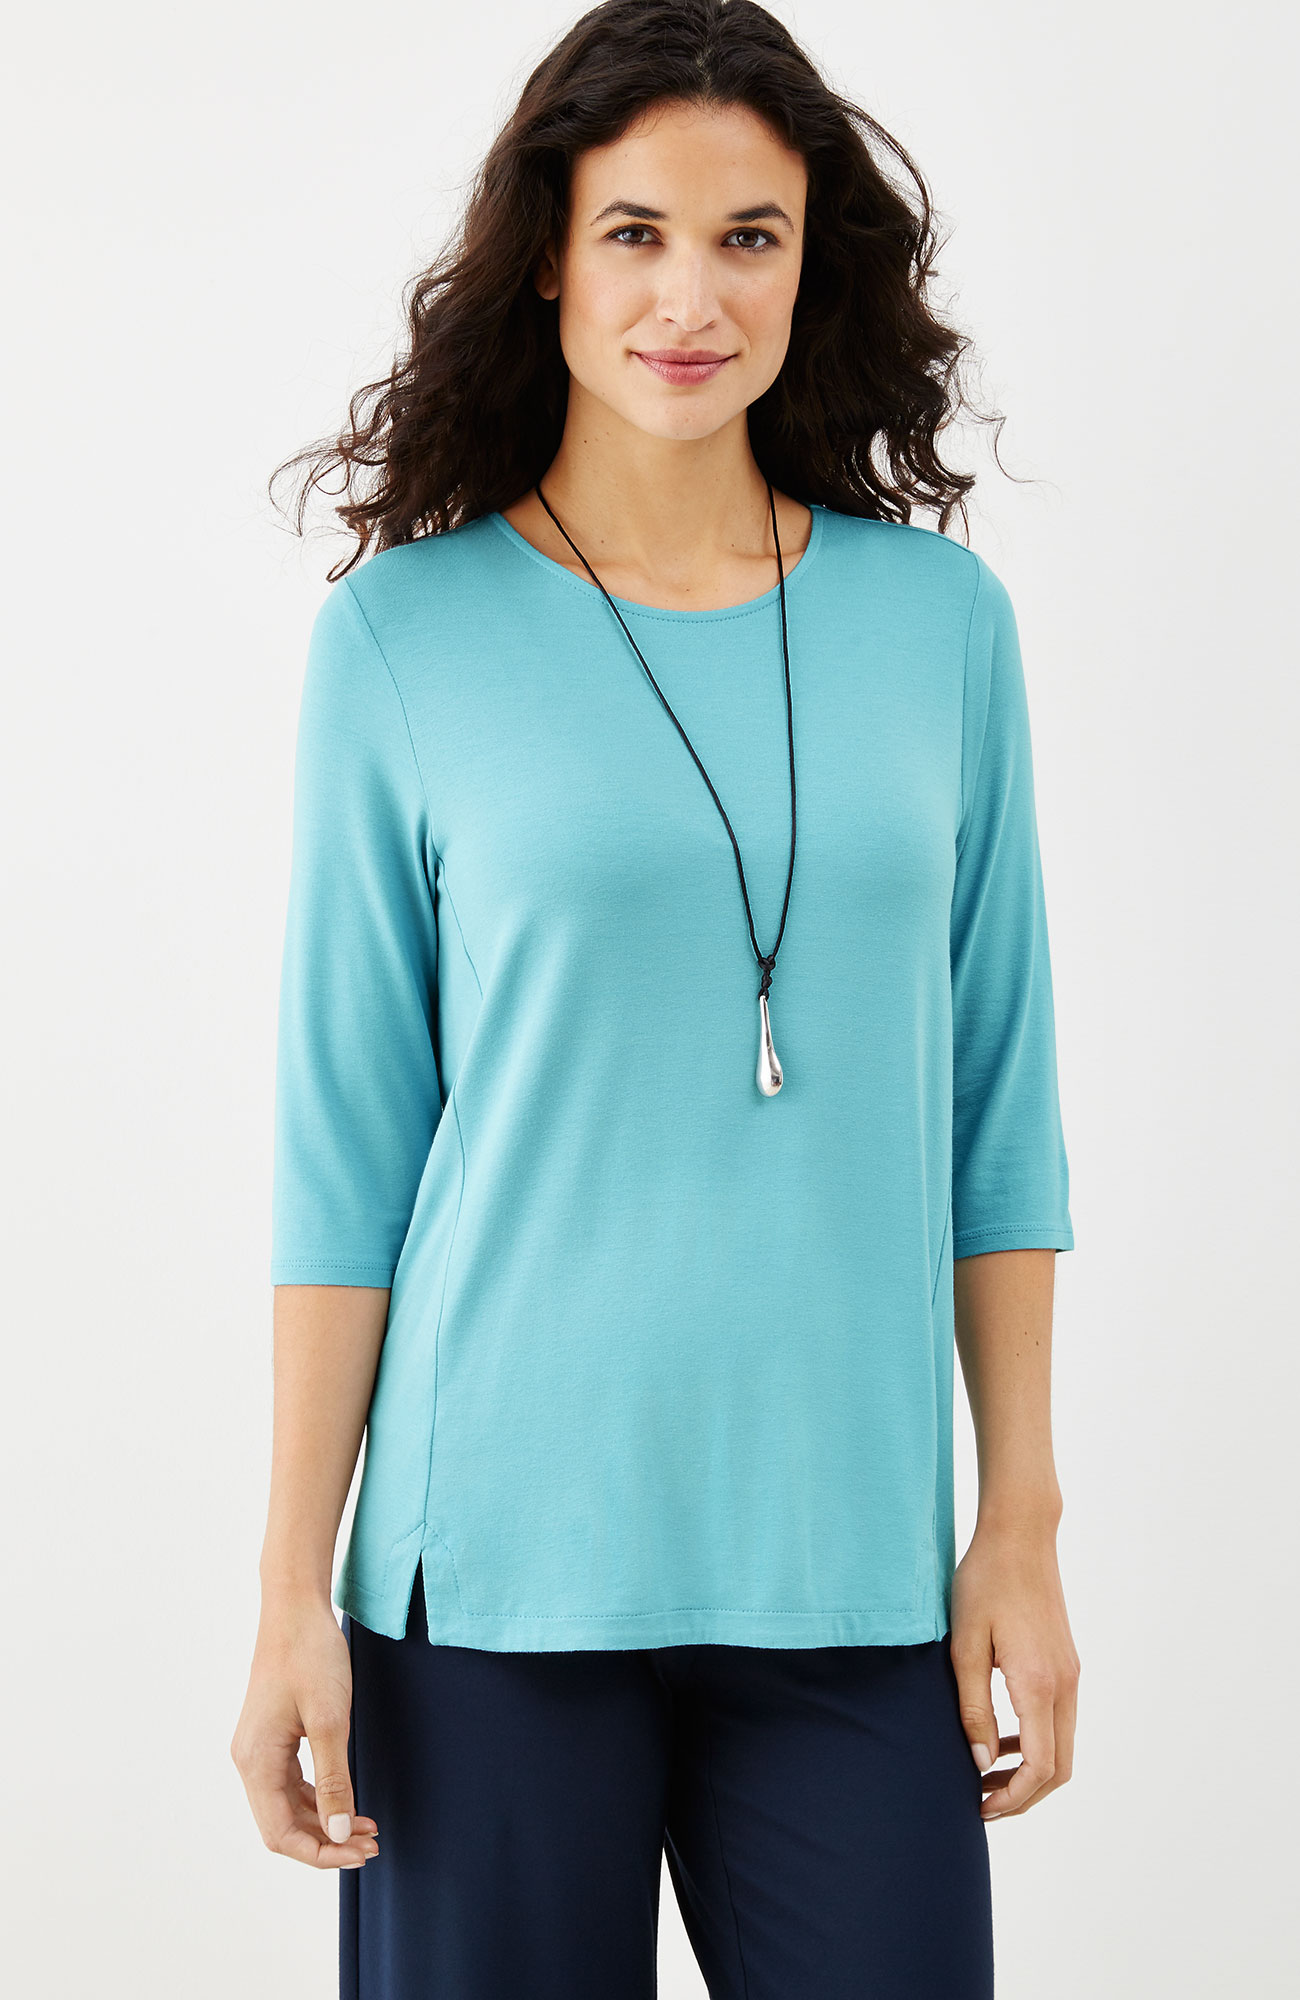 Wearever split-hem top